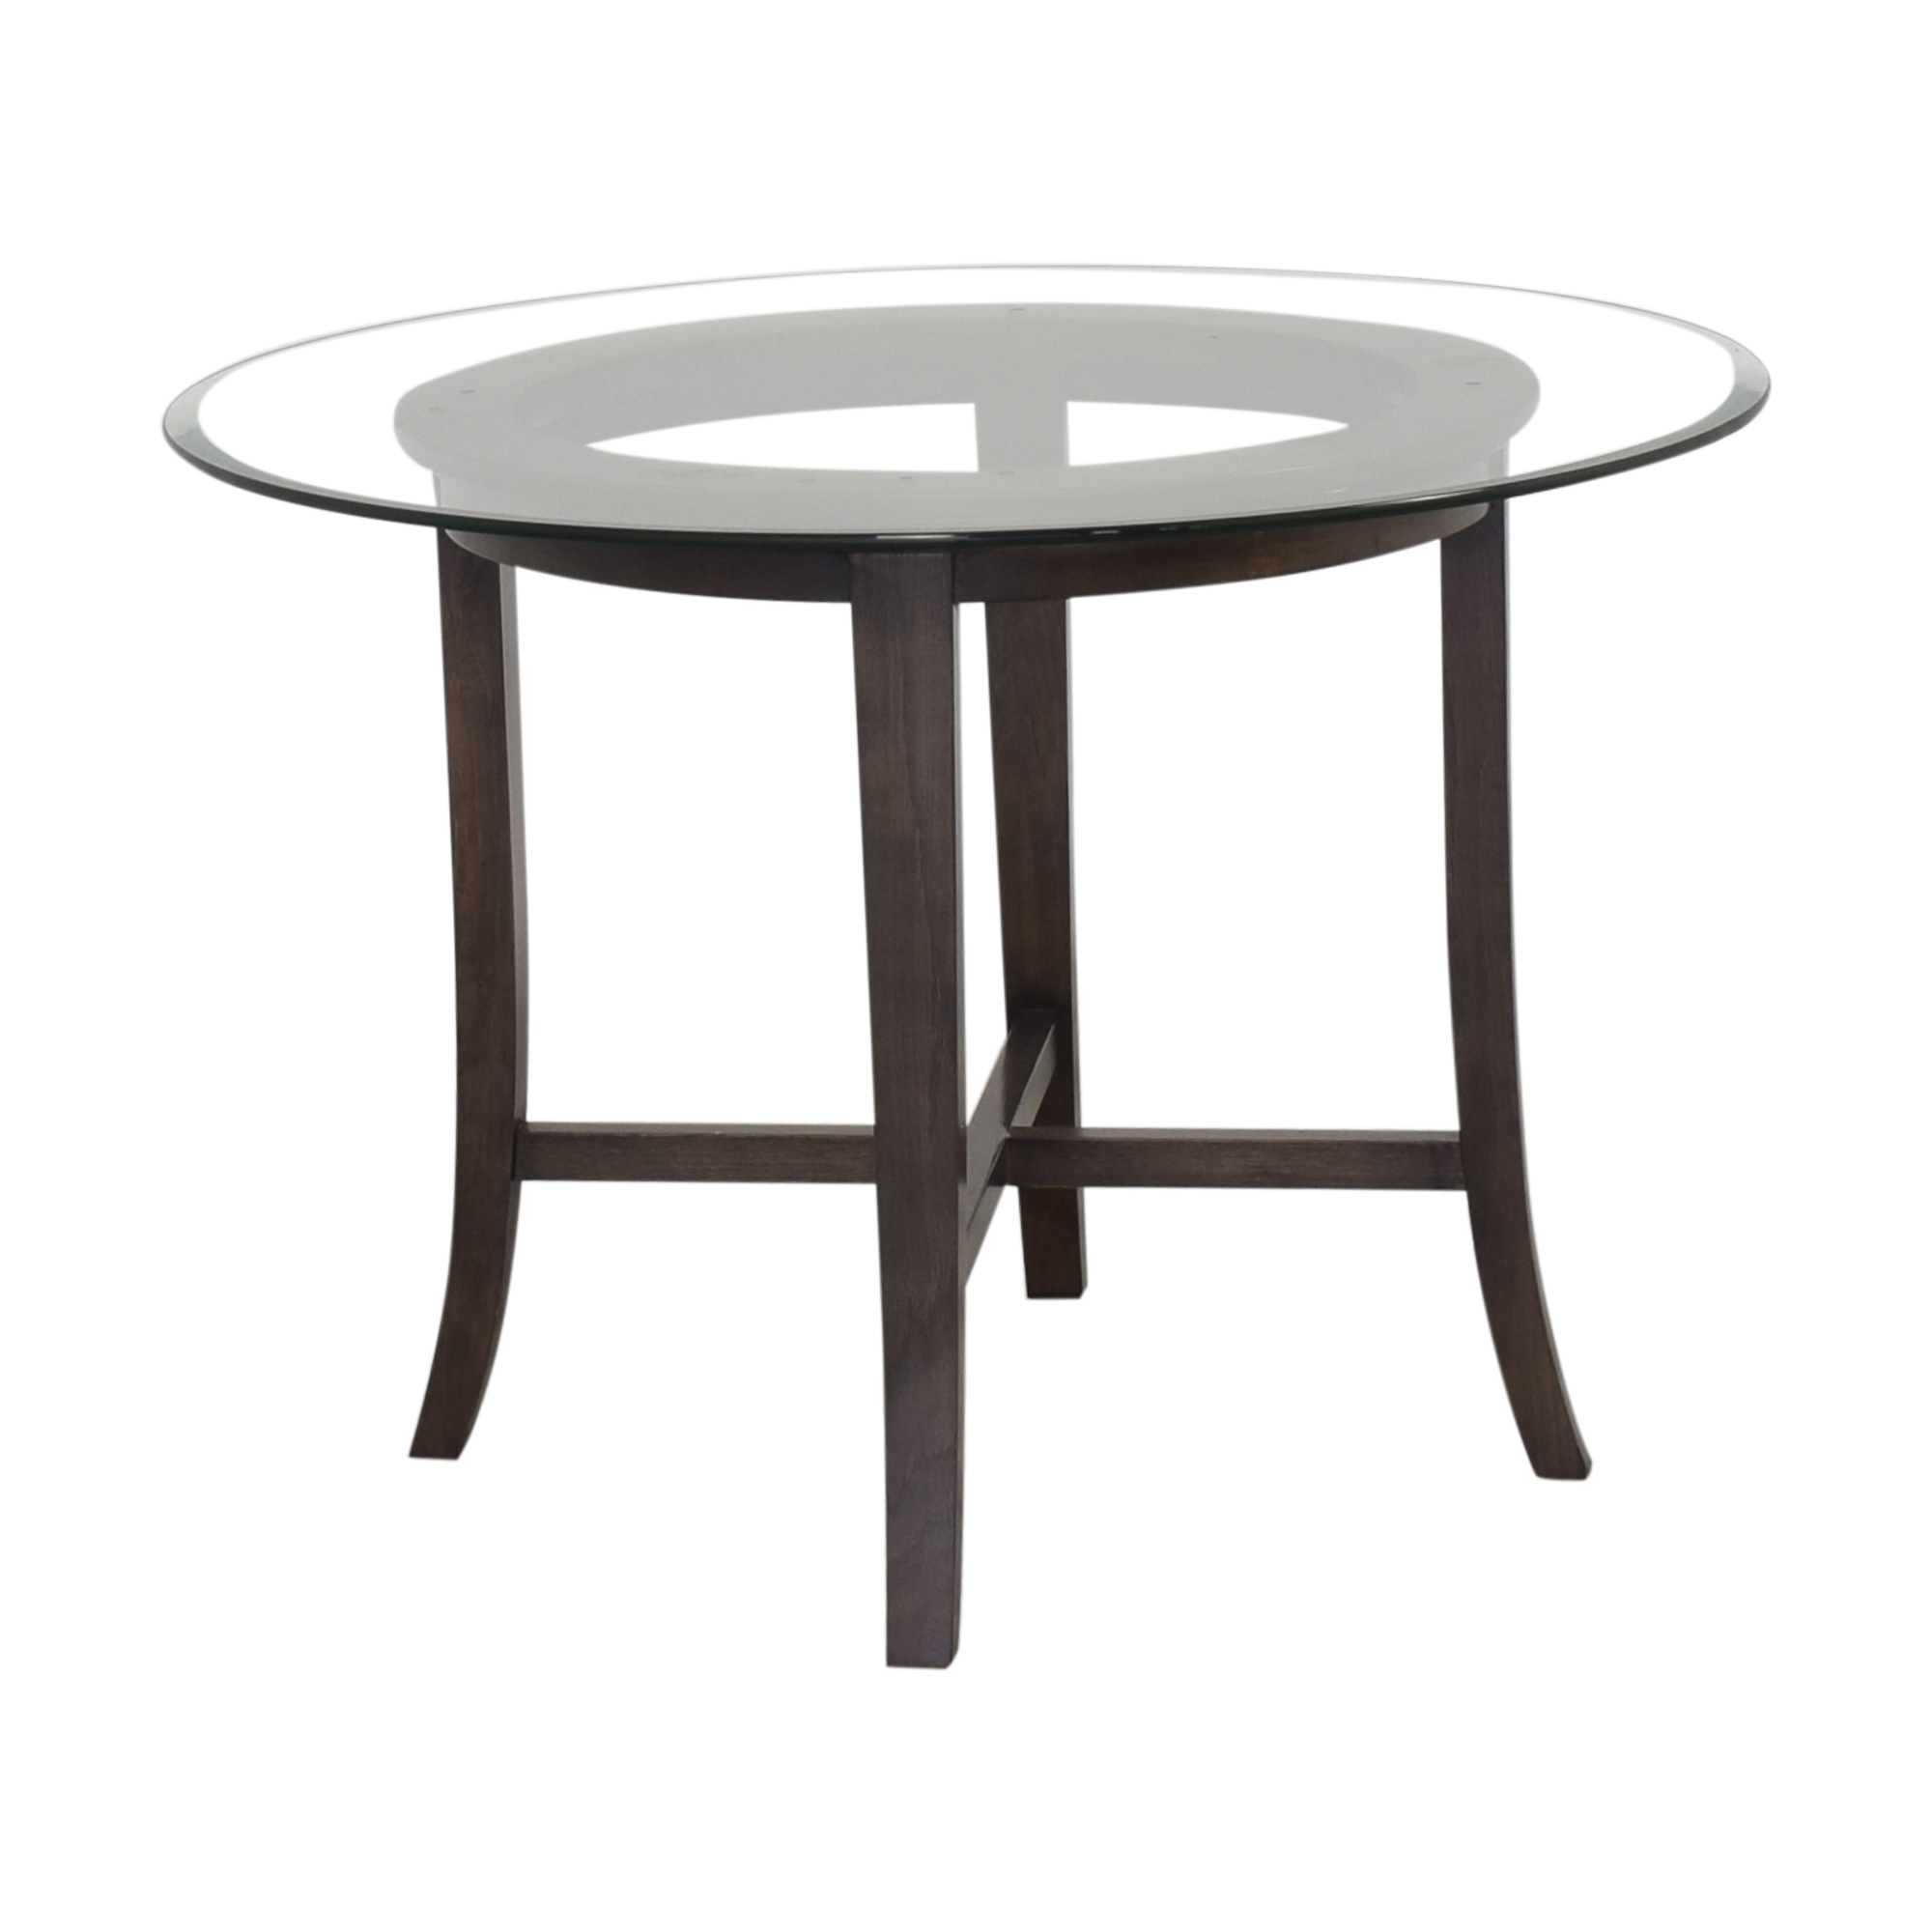 Crate & Barrel Crate & Barrel Halo Dining Table coupon